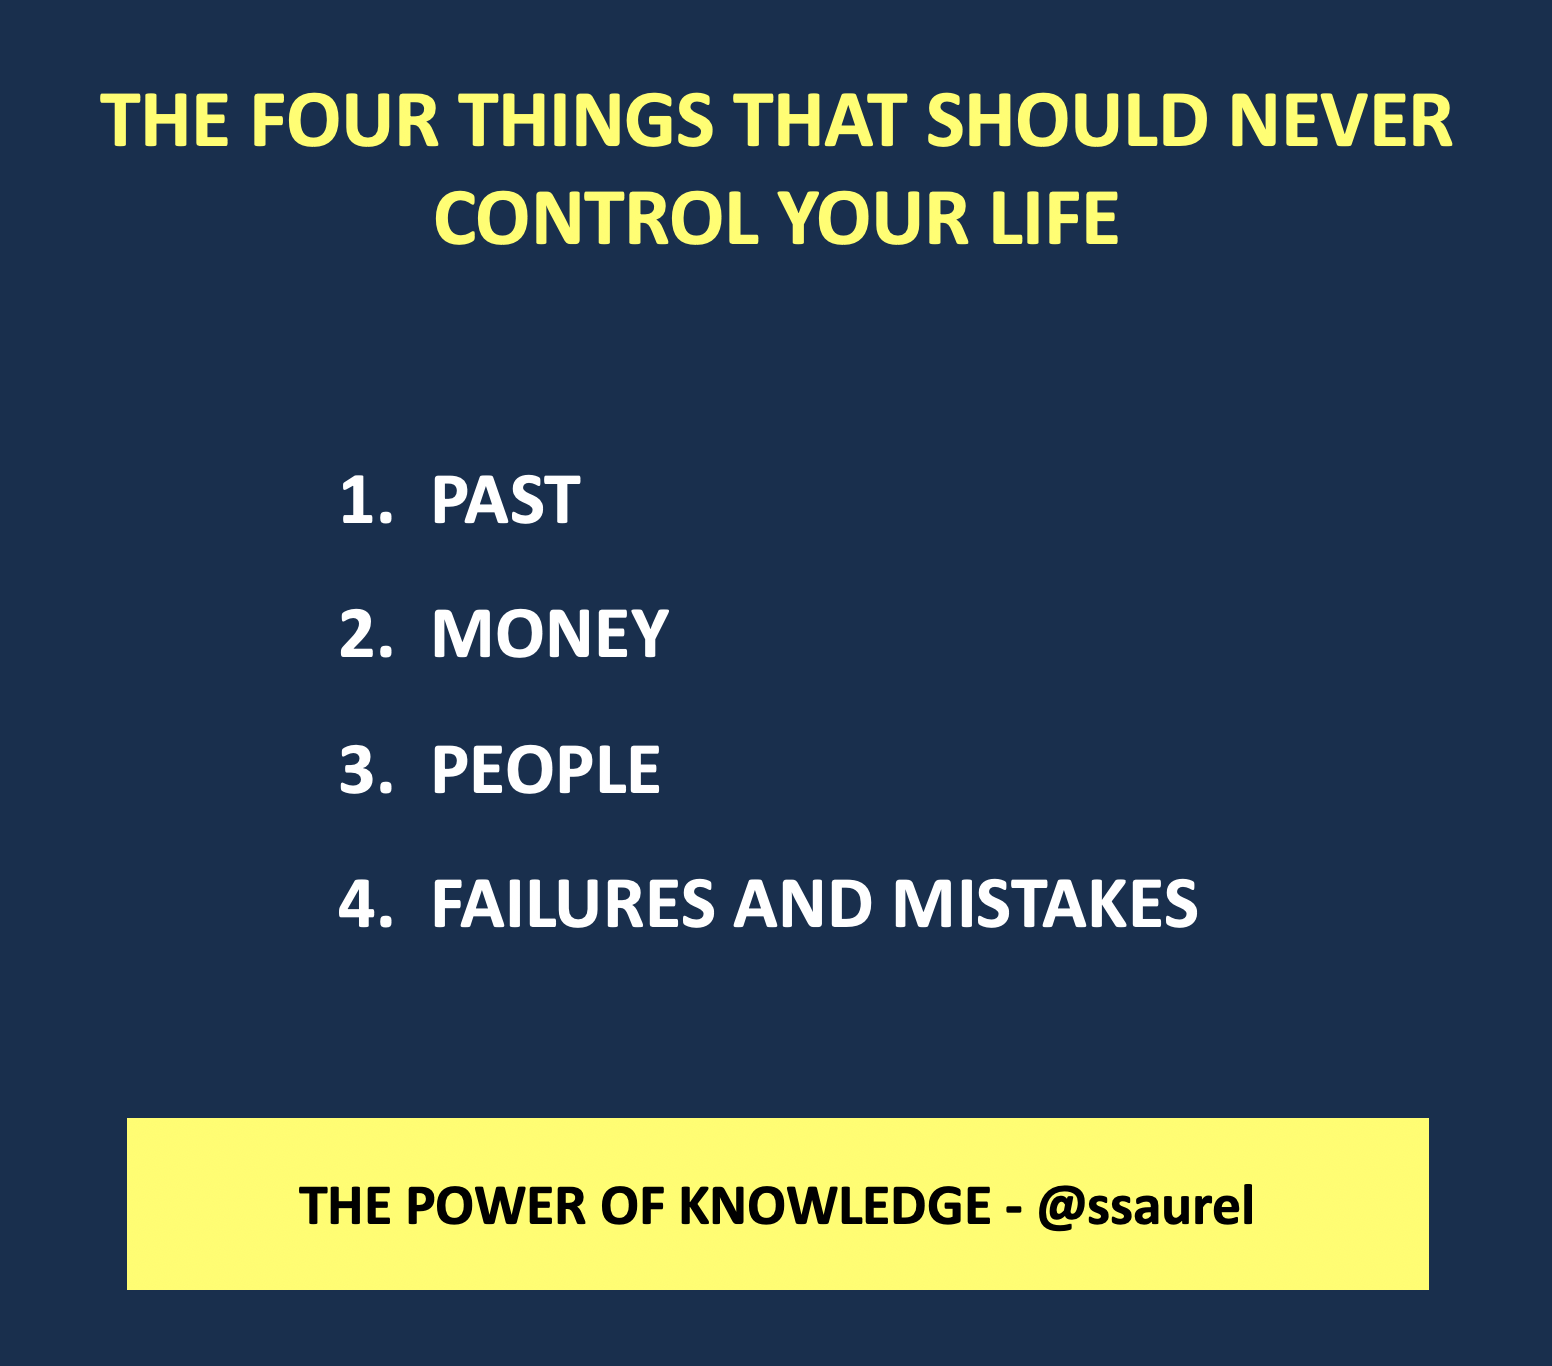 [Image] The Four Things That Should Never Control Your Life